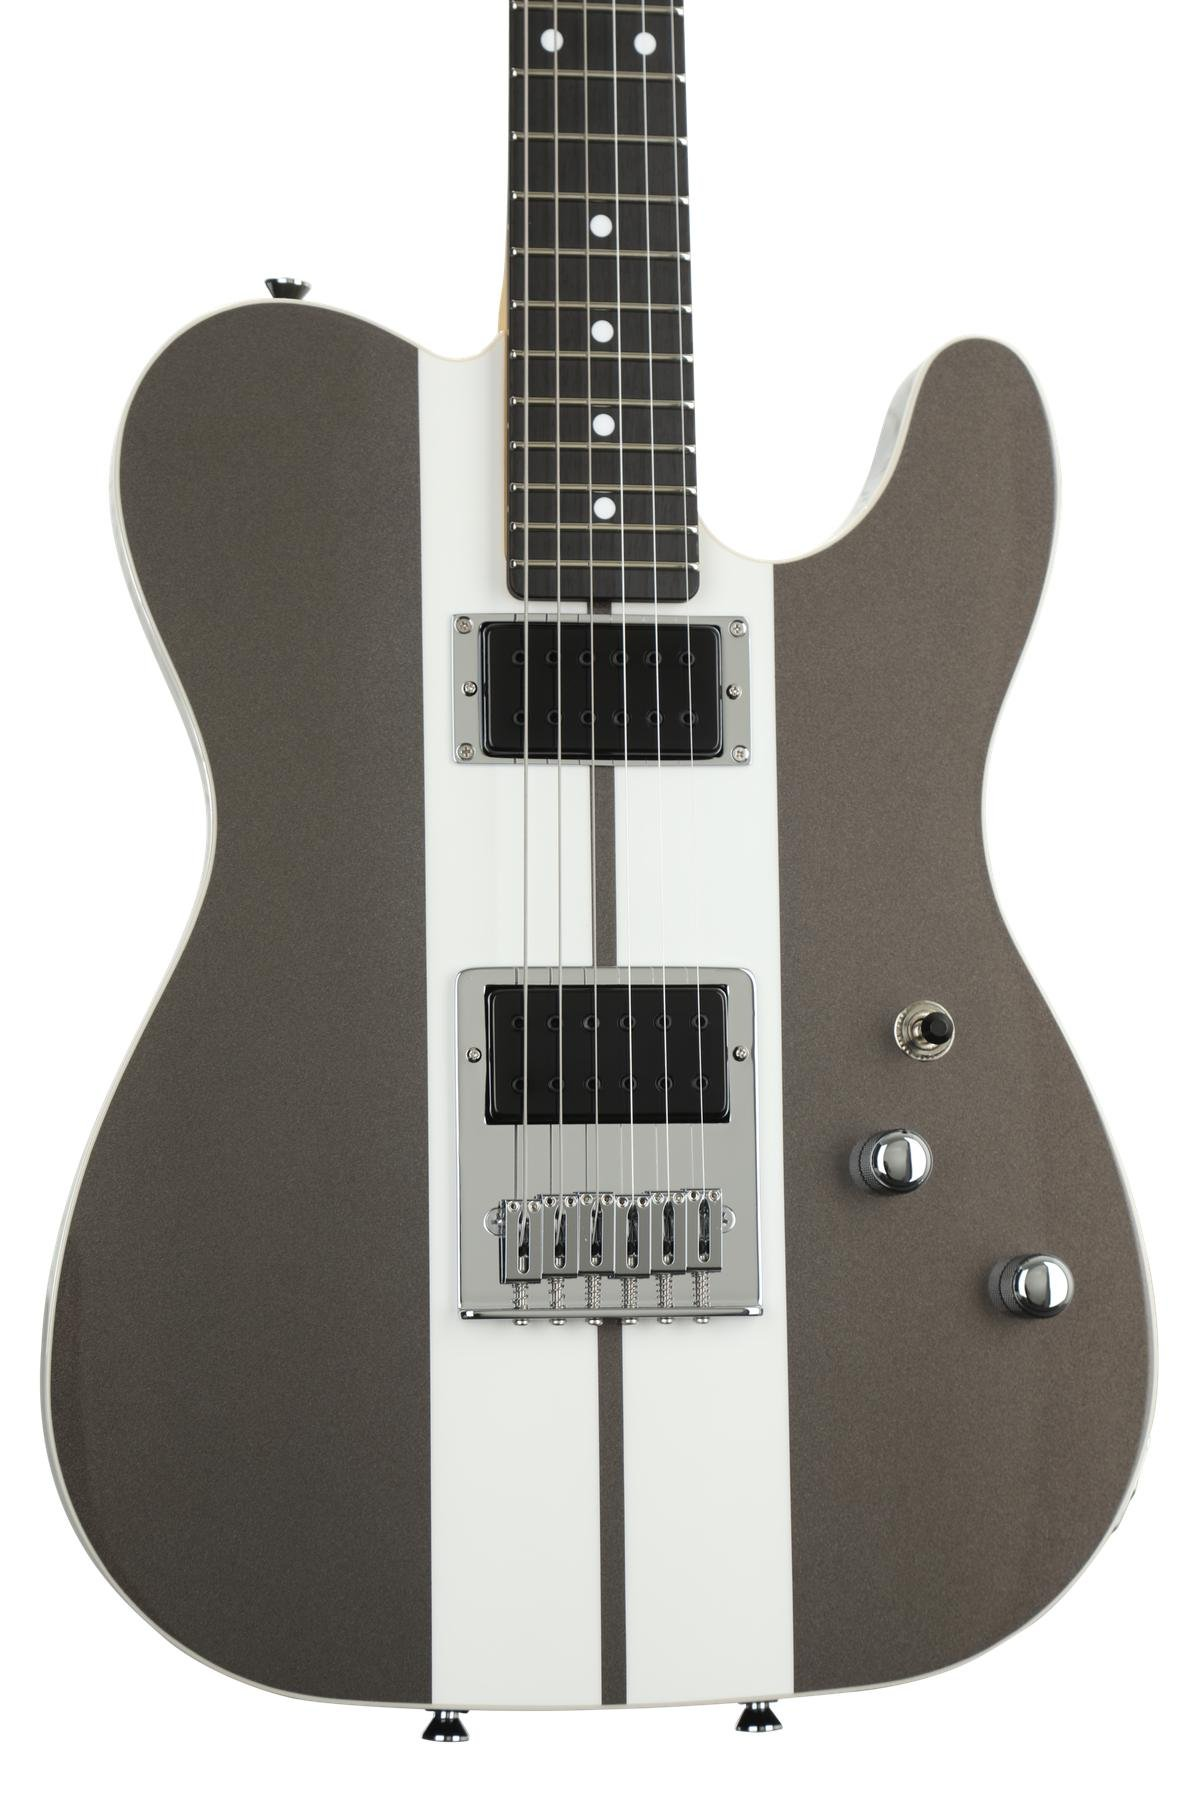 Schecter Usa Pt Custom Charcoal Gray W Racing Stripe Sweetwater Humbuckers 3way Toggle Switch 2 Volumes 1 Tone Coil Tap Series Image